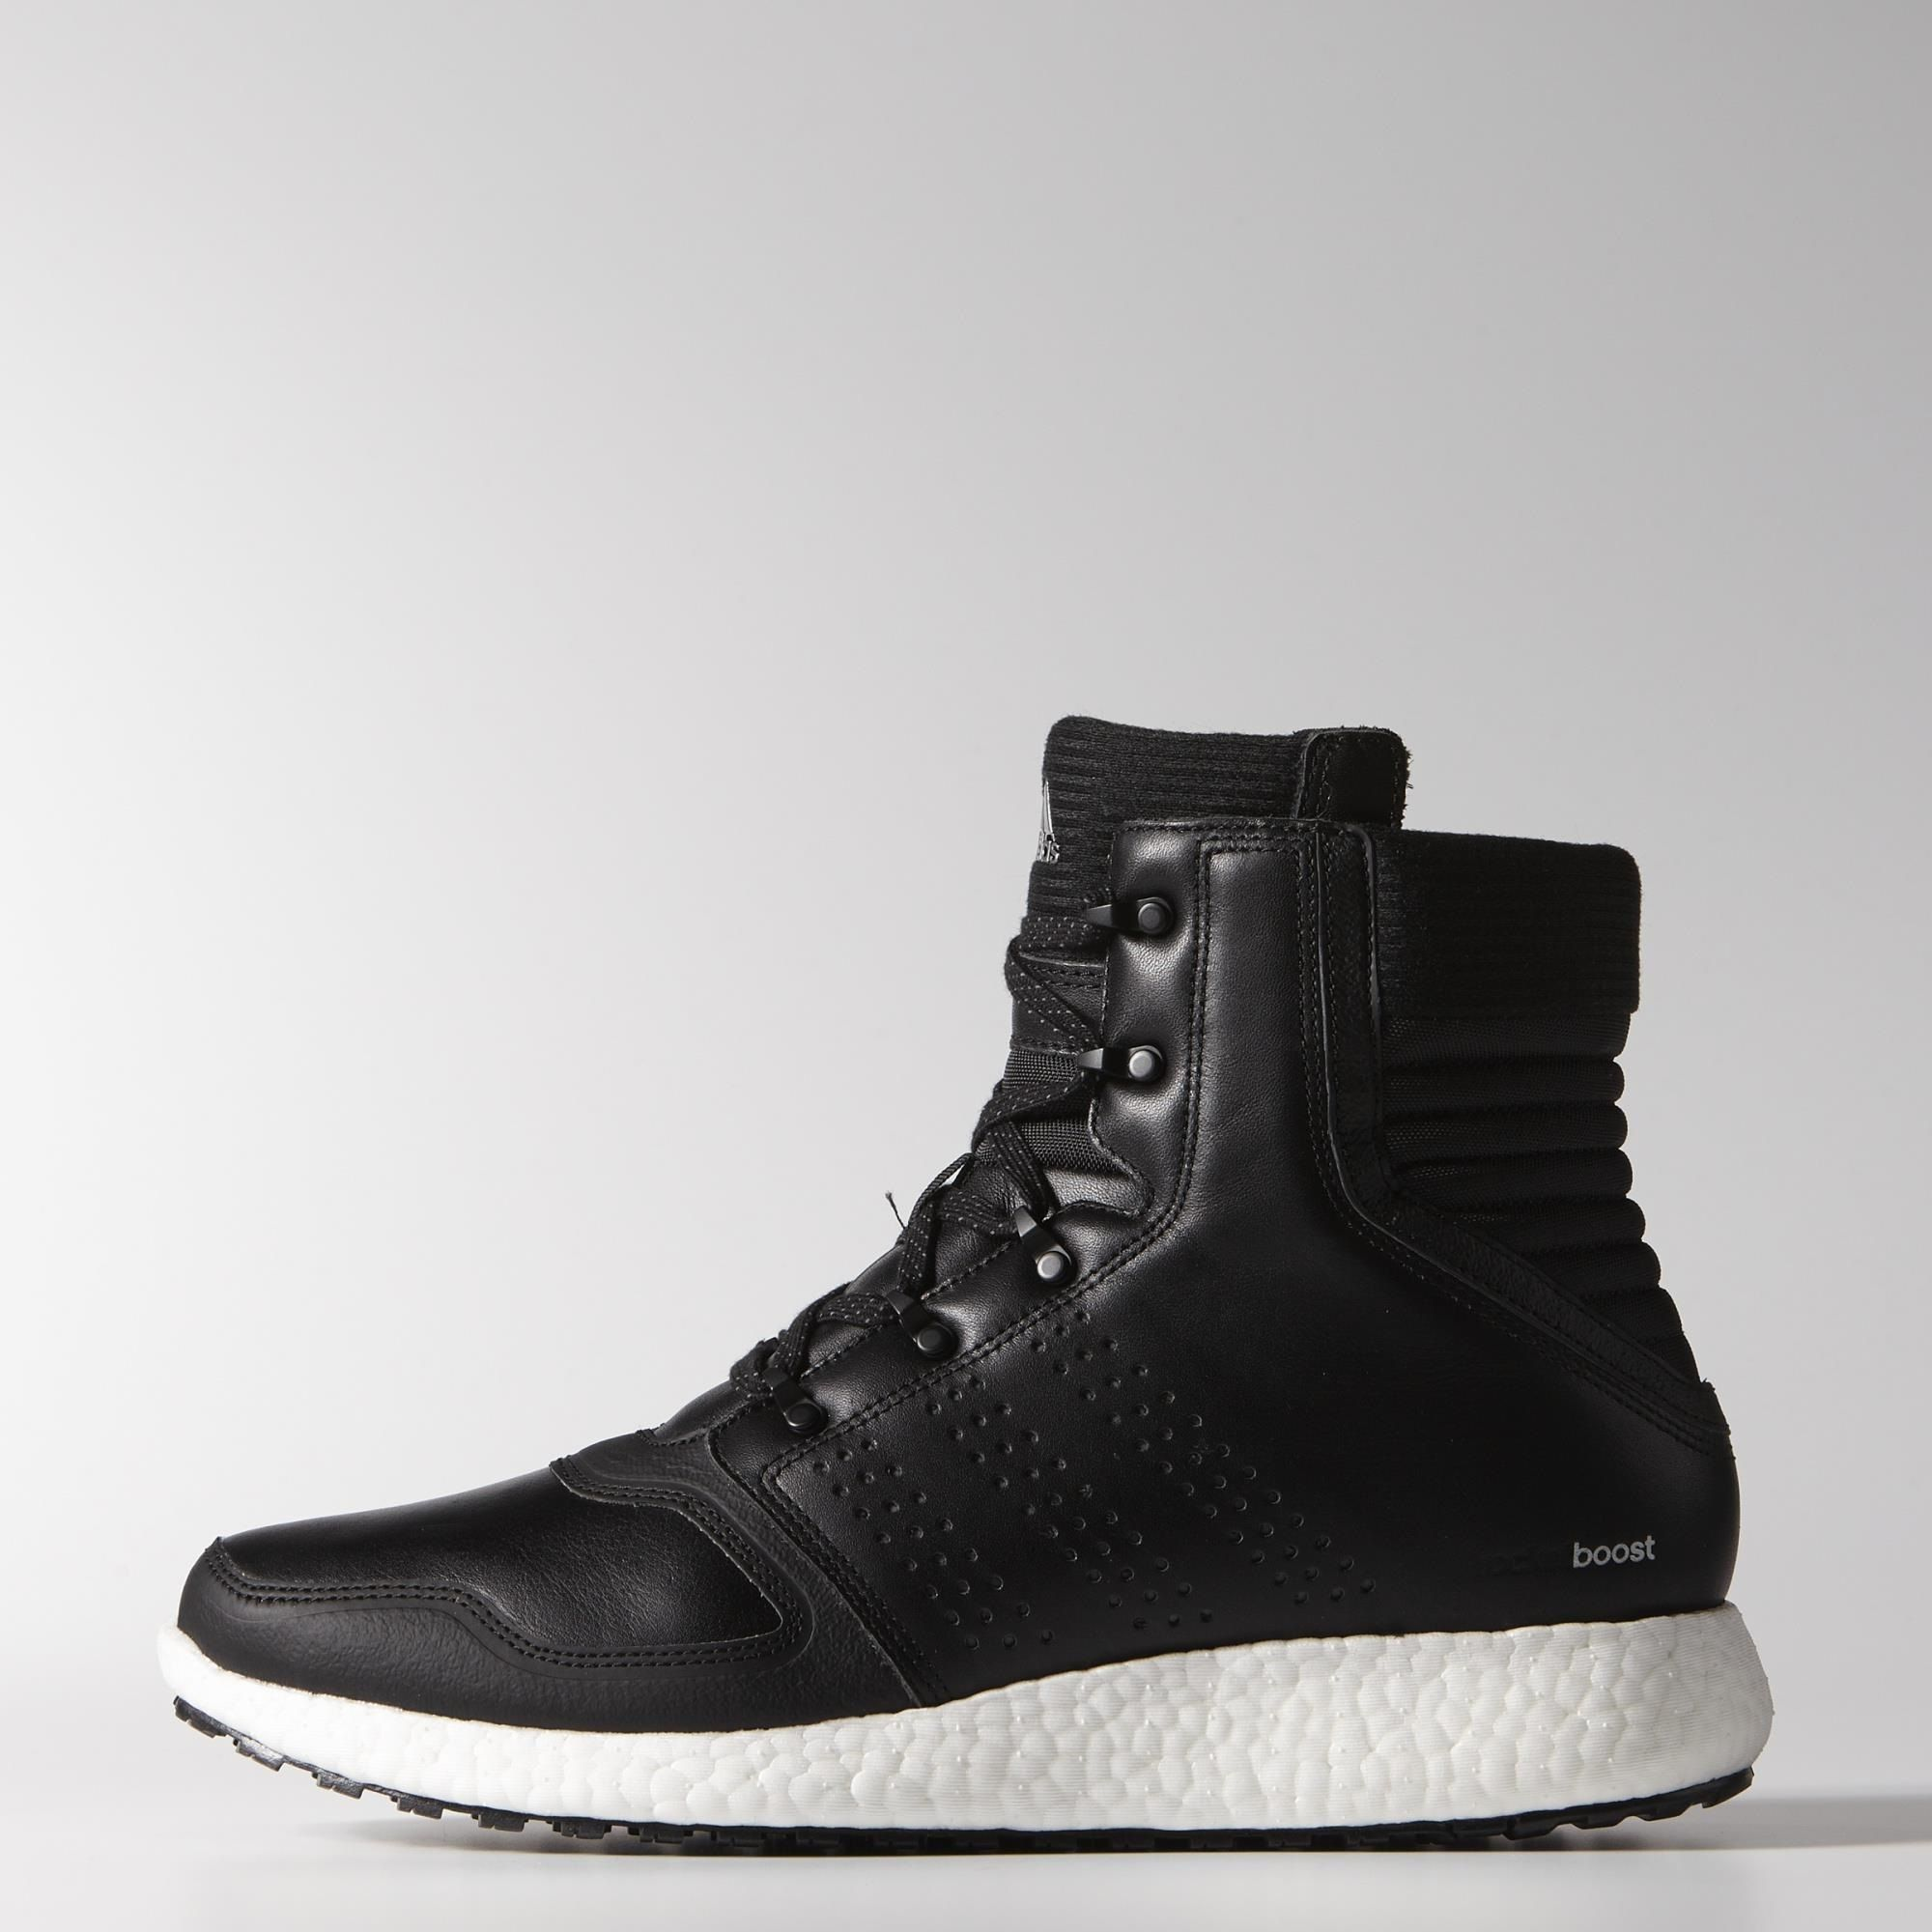 best sneakers 130c6 b5948 adidas - Climaheat Rocket Boost Shoes   Ok, Shoe Fetish Time.   Pinterest   Boost  shoes, Adidas boost shoes and Adidas boost